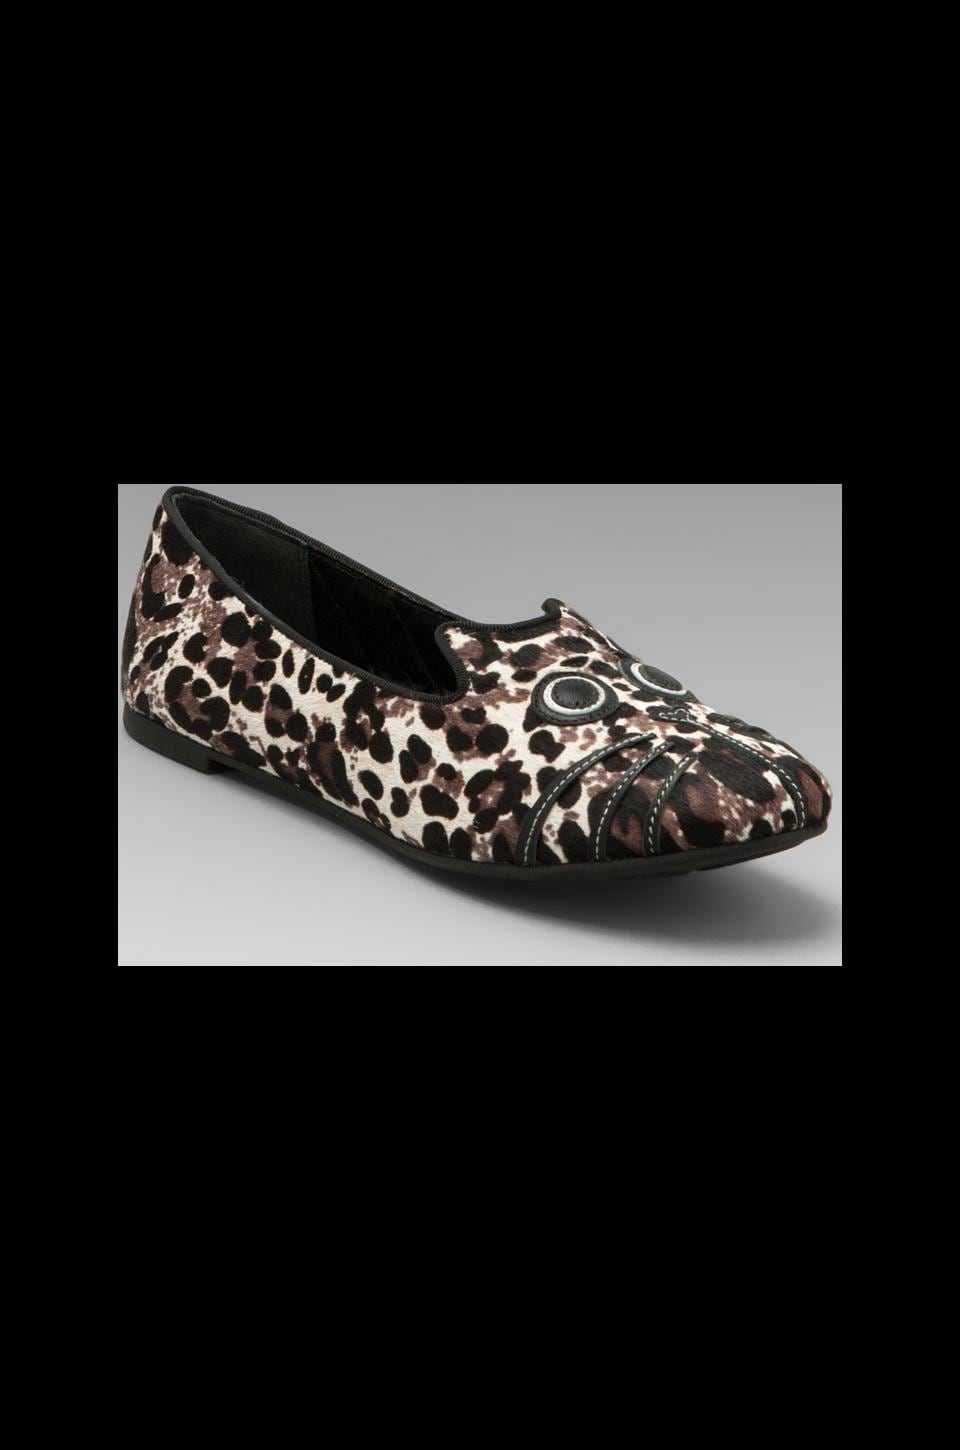 Marc by Marc Jacobs Friends of Mine Pony Slipper with Calf Hair in Elephant Grey Multi